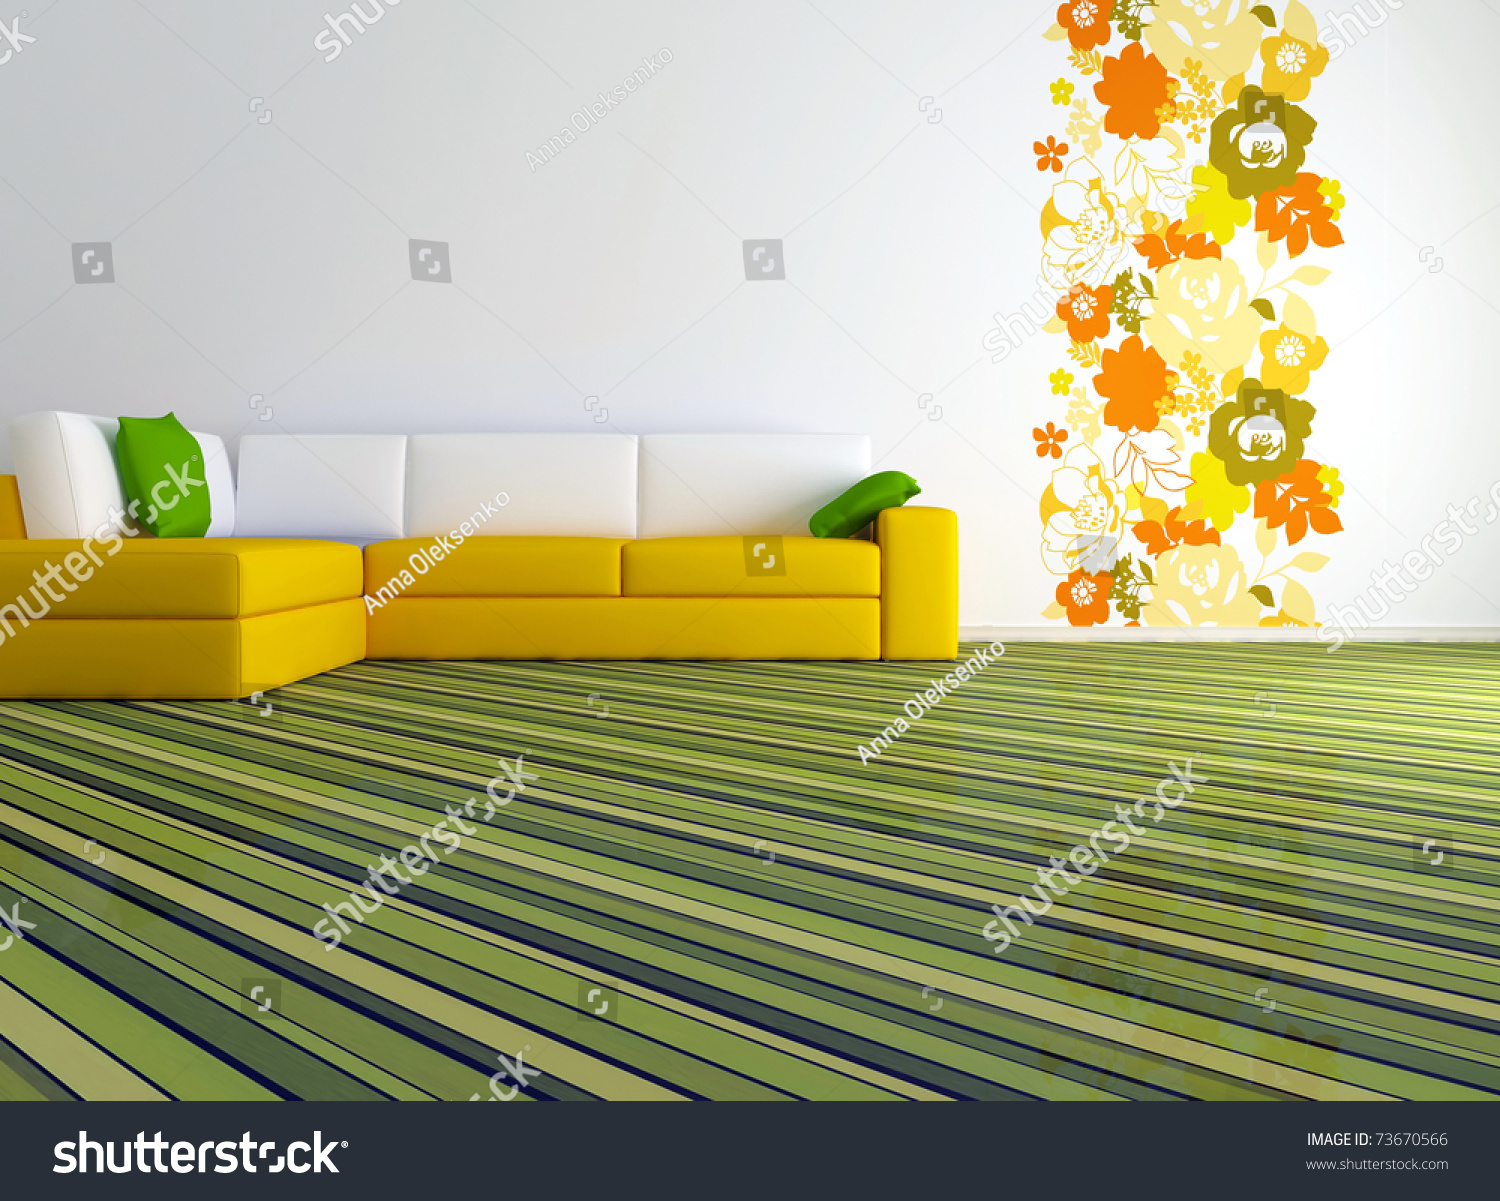 save to a lightbox bright yellow sofa living